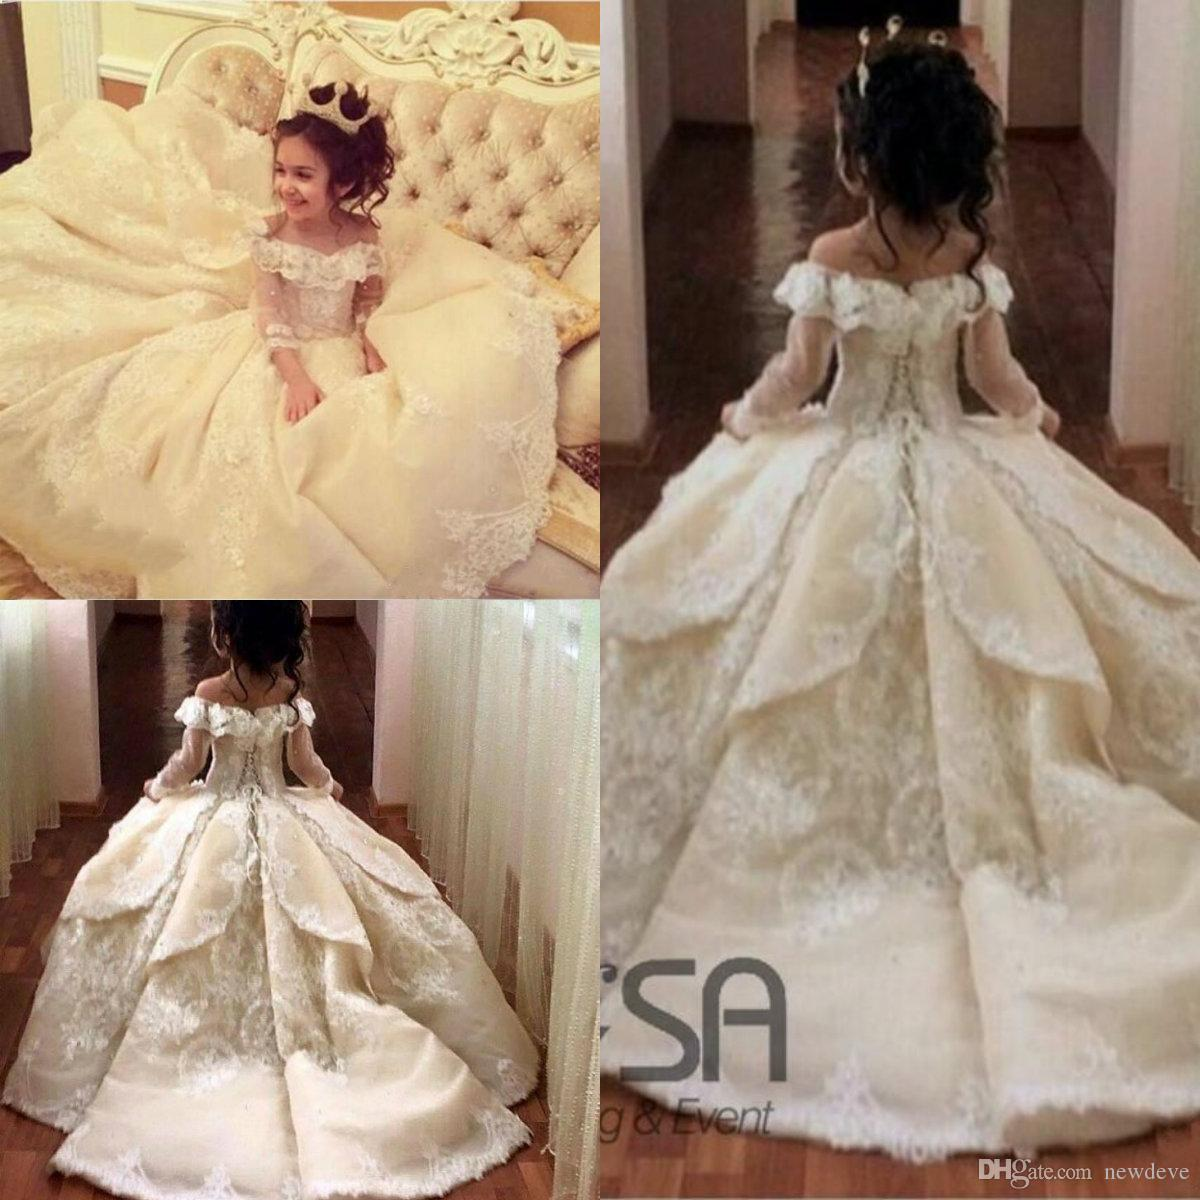 a94403c9bbf 2019 Vintage Princess Flower Girls Dresses Lace Off Shoulder Special  Occasion For Weddings Ball Gown Kids Pageant Gowns Communion Dresses Flower  Girl ...